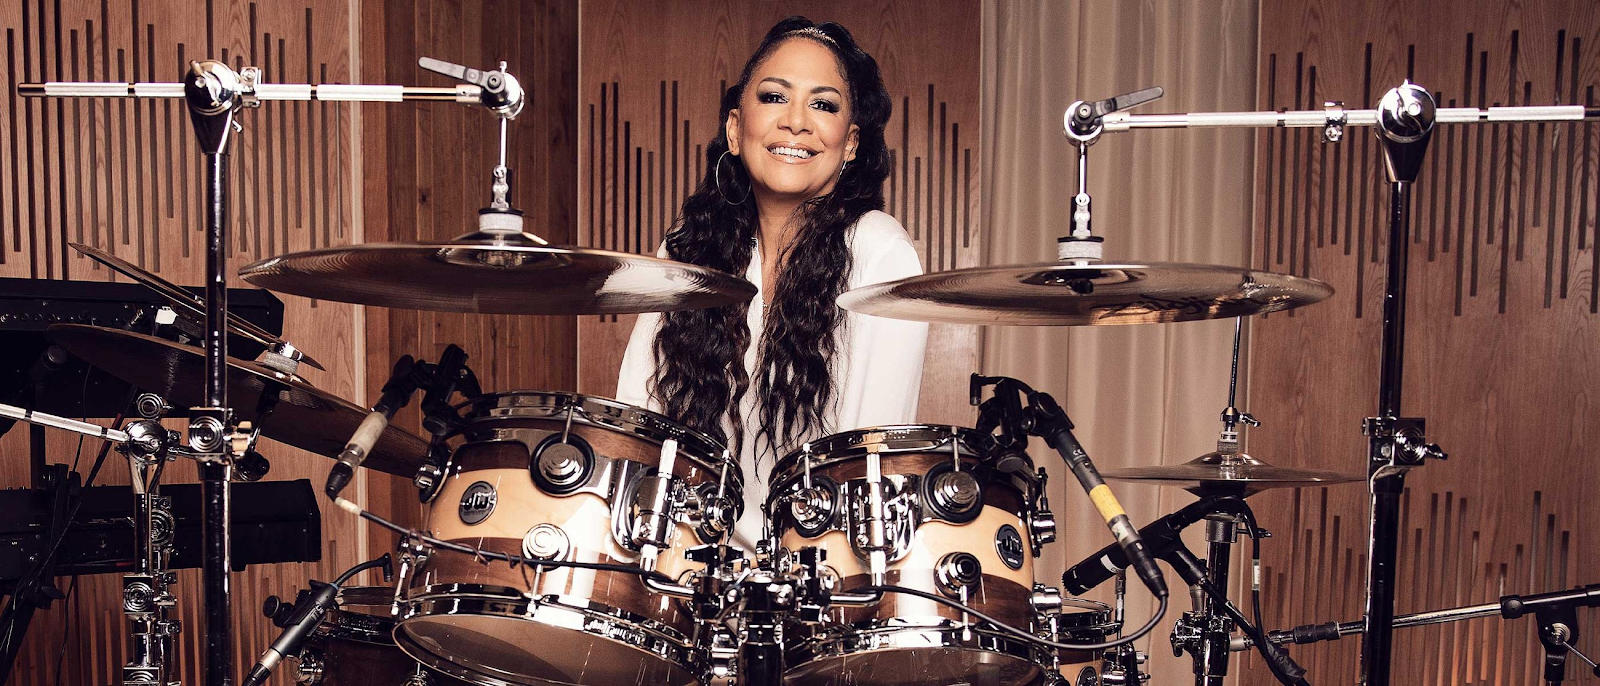 Online Drumming and Percussion Course with Sheila E.